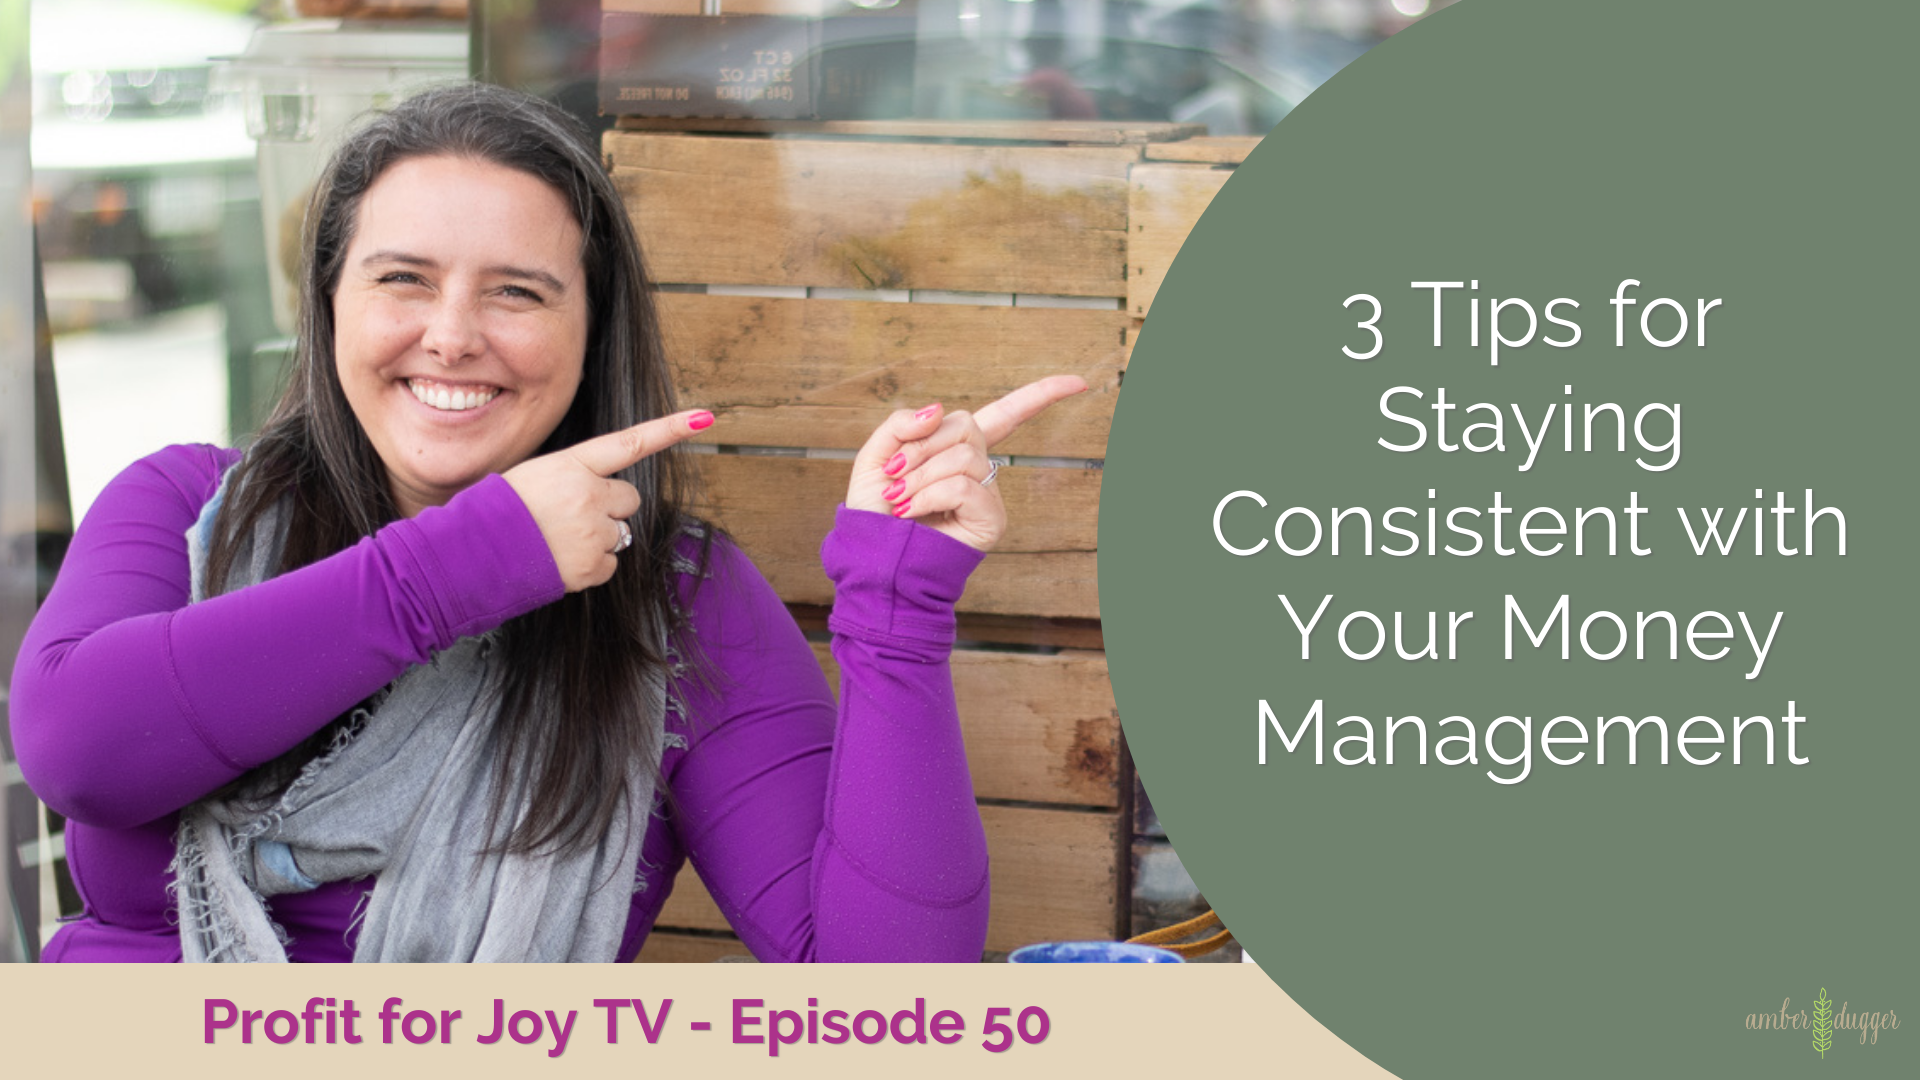 3 Tips for Staying Consistent with Your Money Management